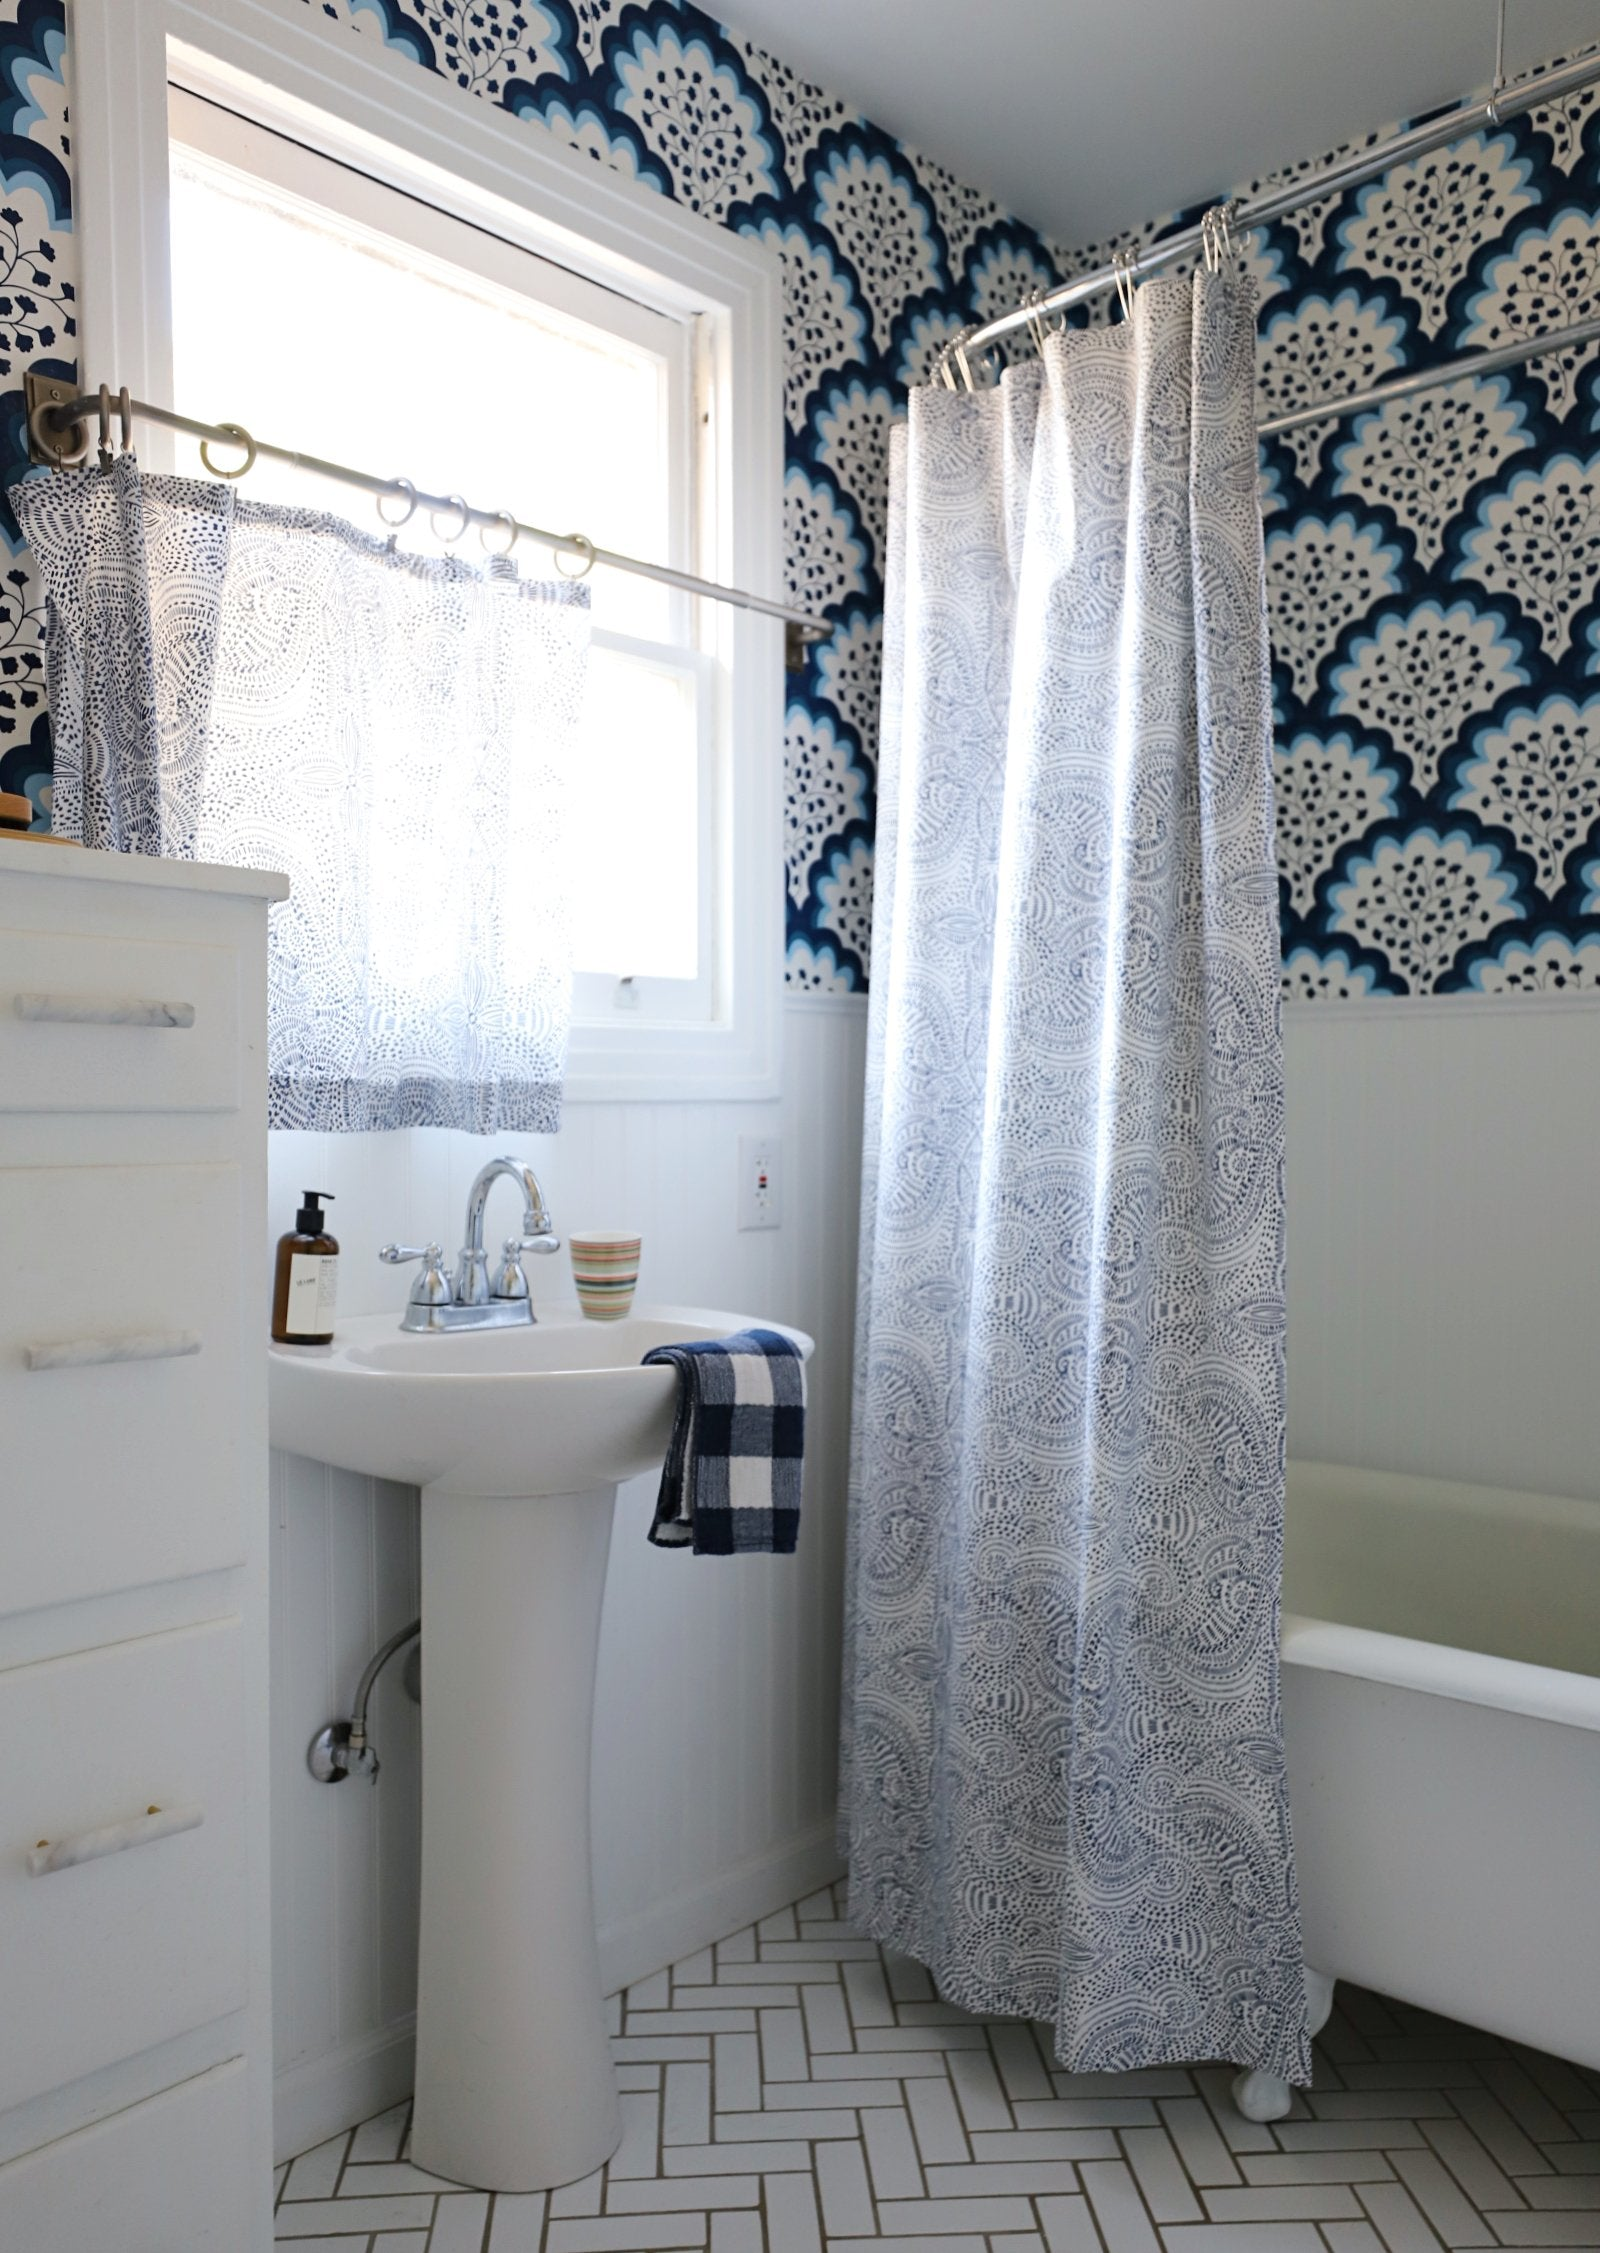 Before & After: A Punchy Pattern-Filled Bathroom